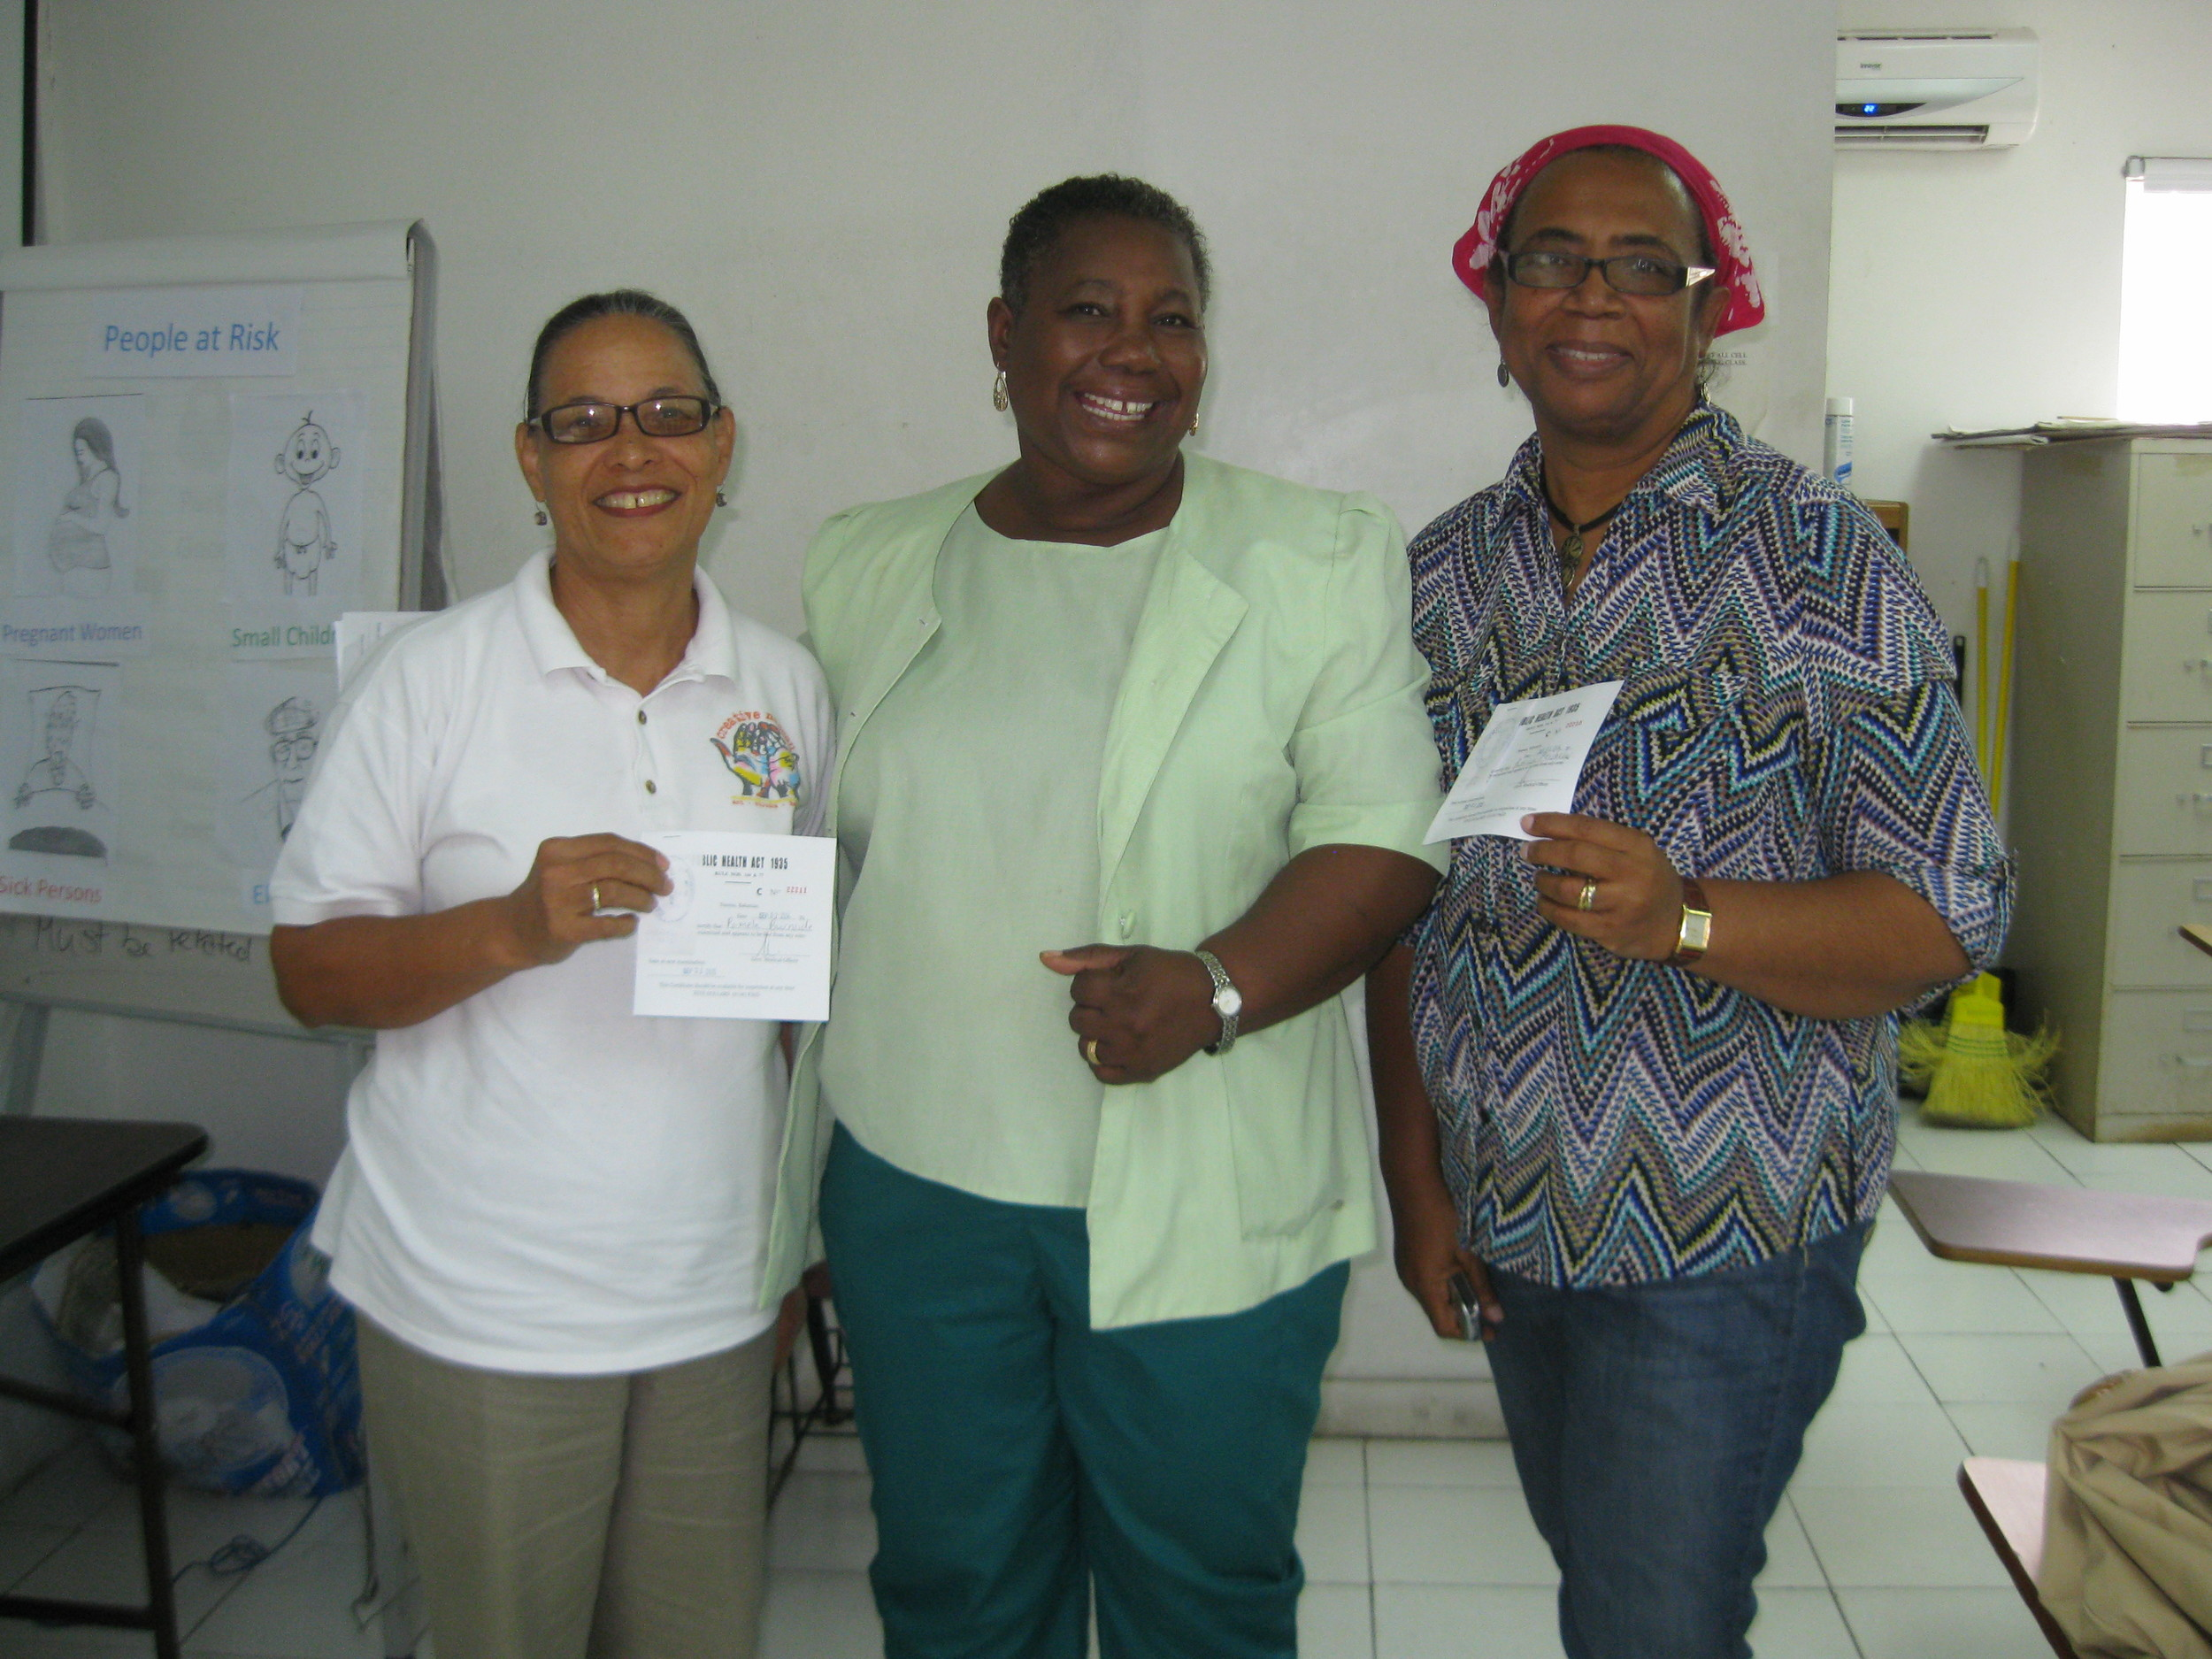 Pam (left) and Patricia (right) pose with their instructor, Nurse Turnquest (centre) after successful;y completing their Food Handlers Course for the CN Market